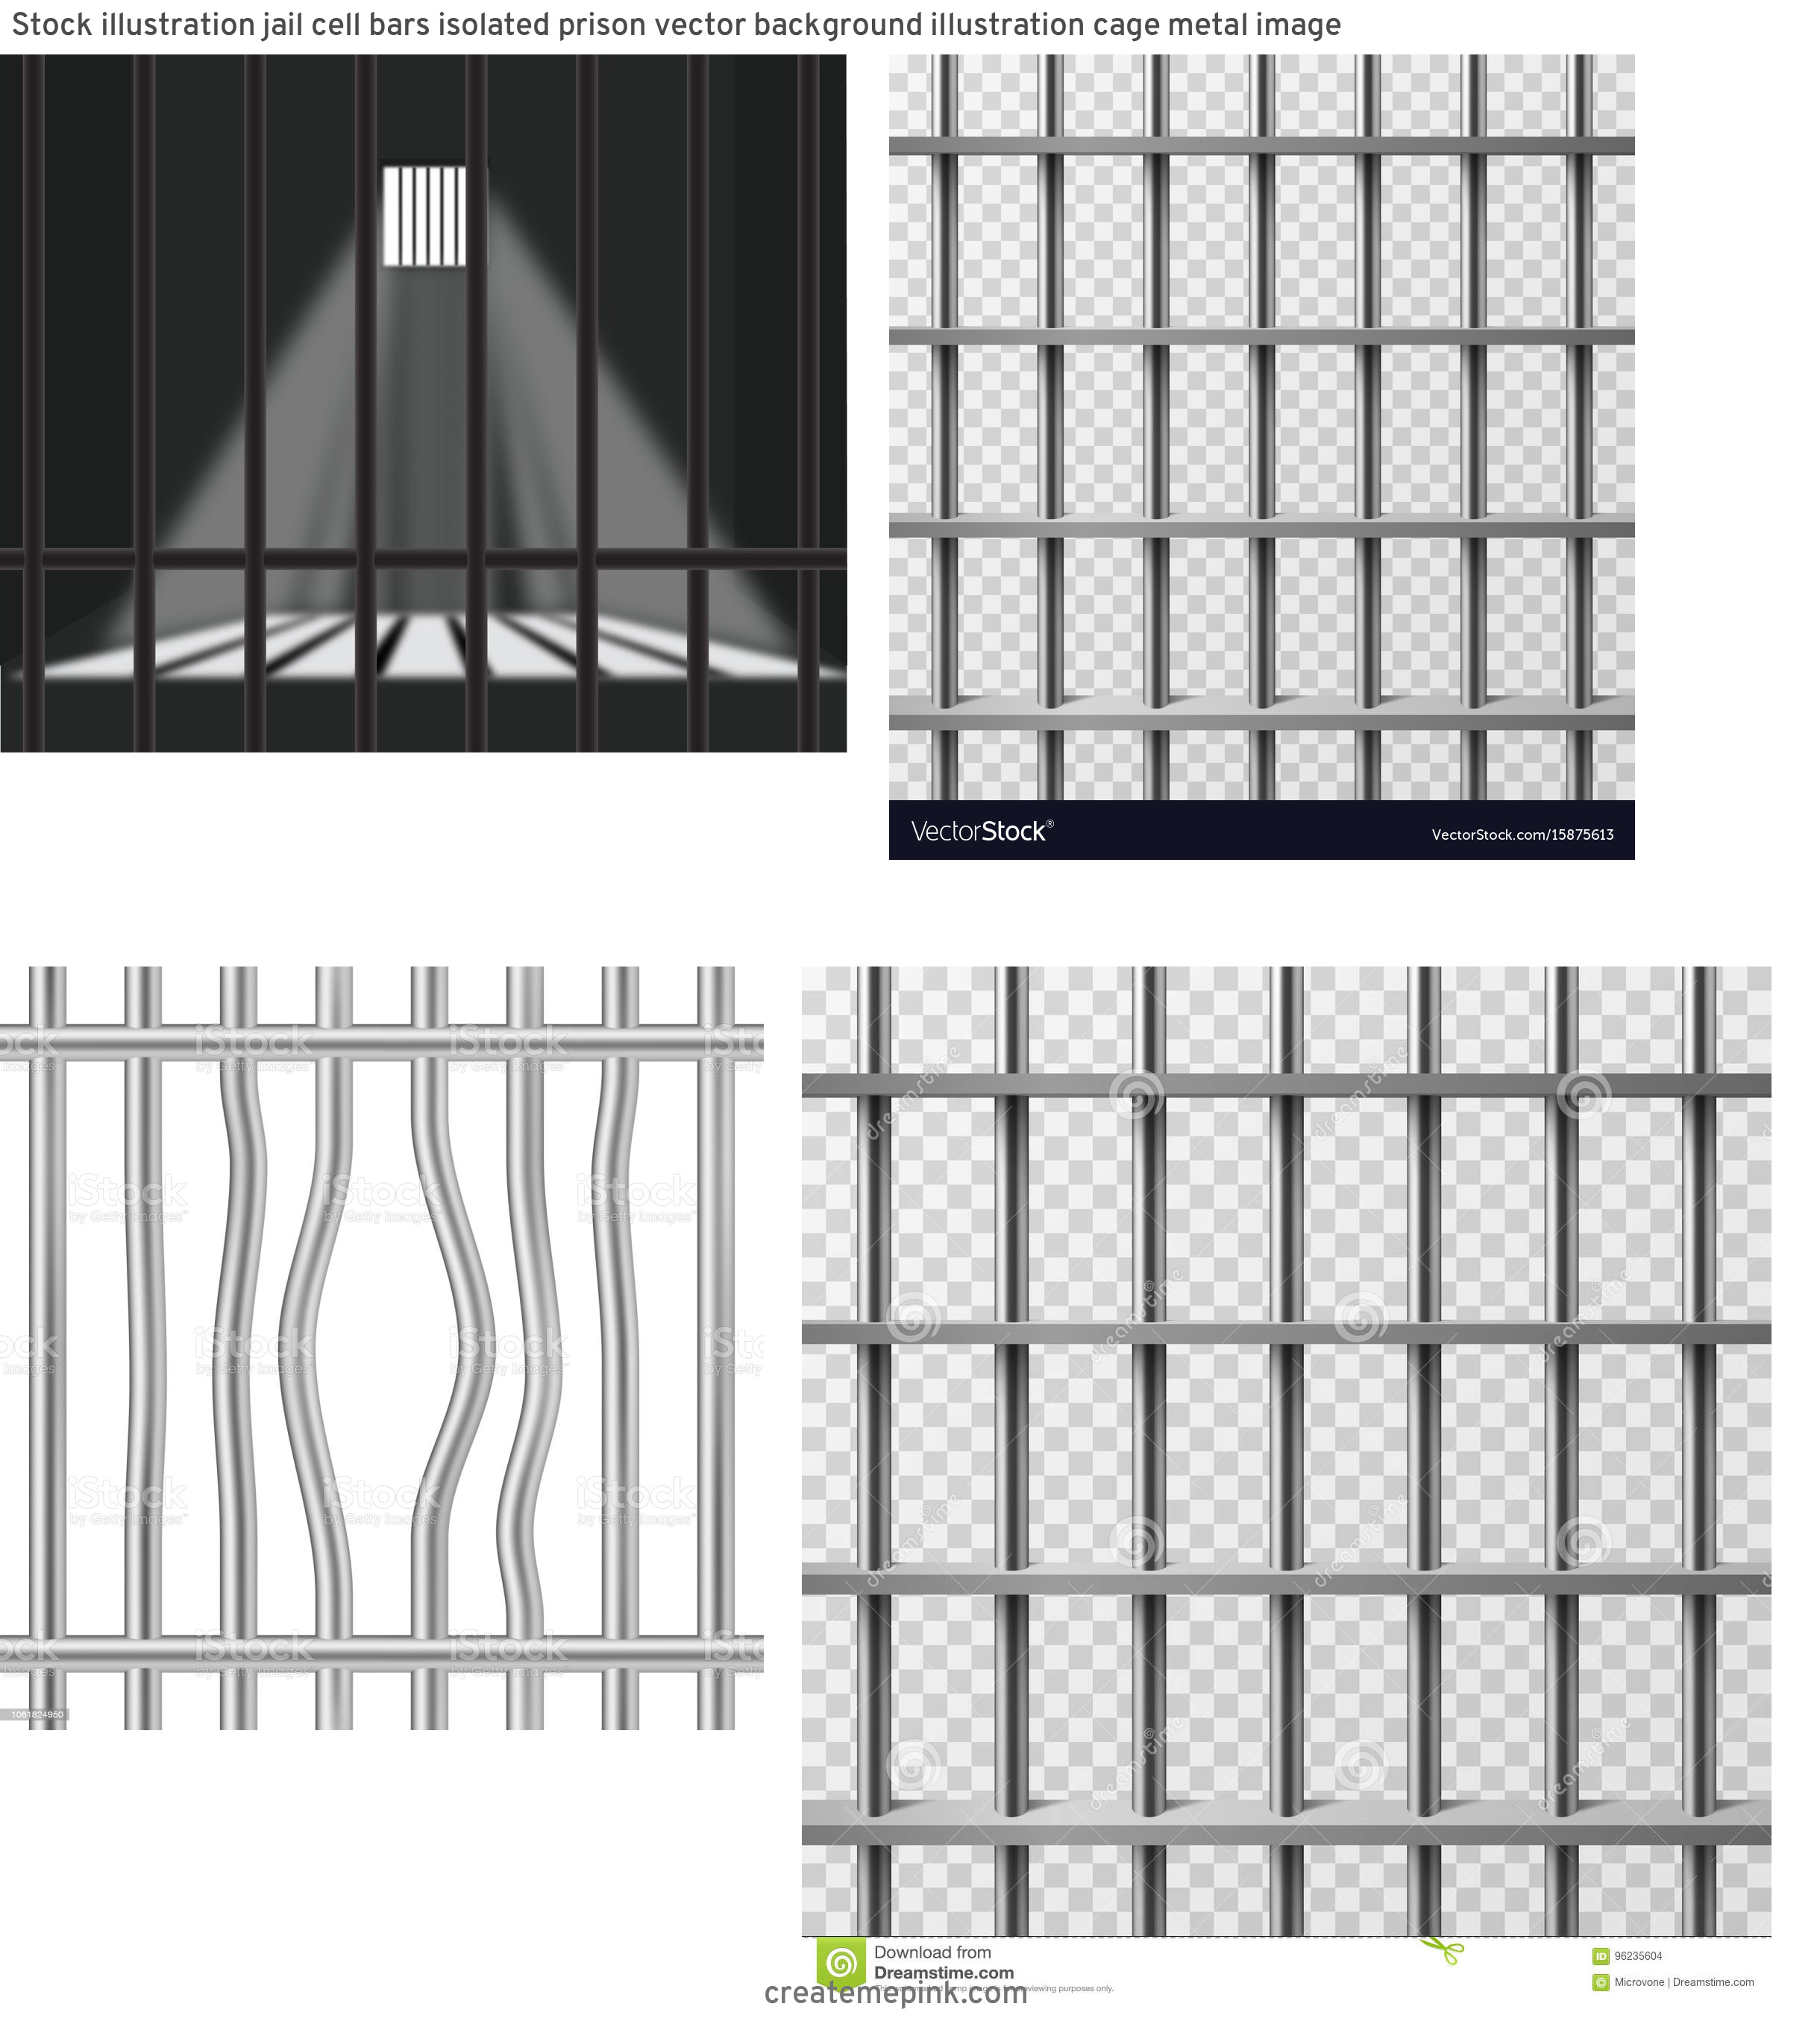 Jail Cell Vector: Stock Illustration Jail Cell Bars Isolated Prison Vector Background Illustration Cage Metal Image